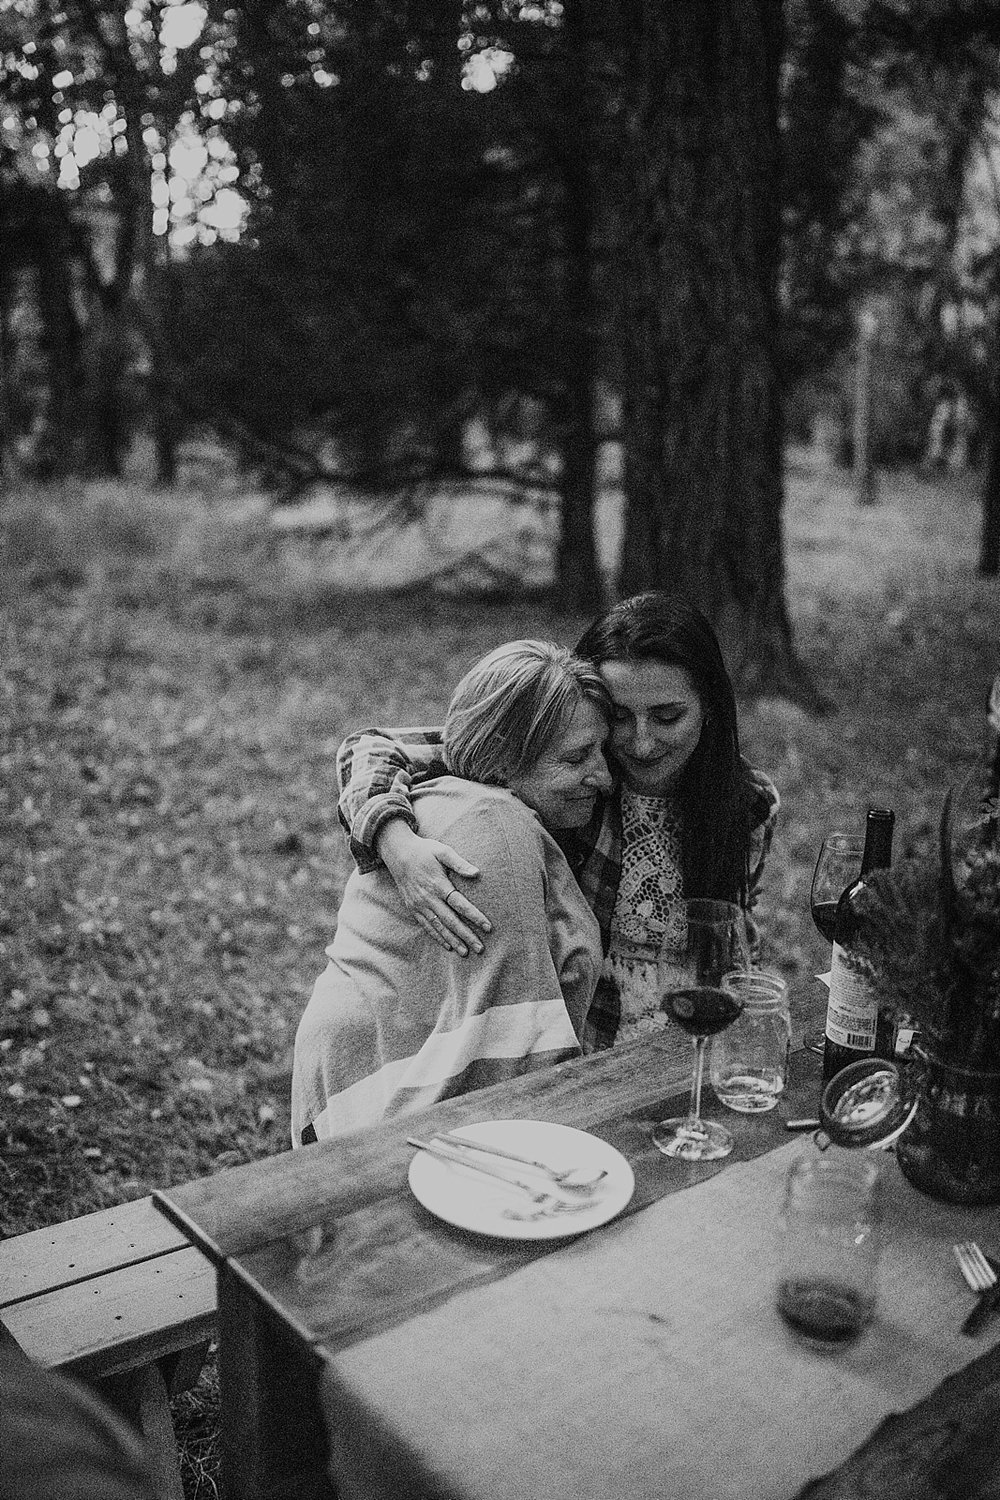 elopement dinner, picnic elopement, norway elopement, post elopement celebration, wedding in the woods, buena vista elopement, buena vista wedding, nathrop colorado wedding, bbq wedding, bbq elopement